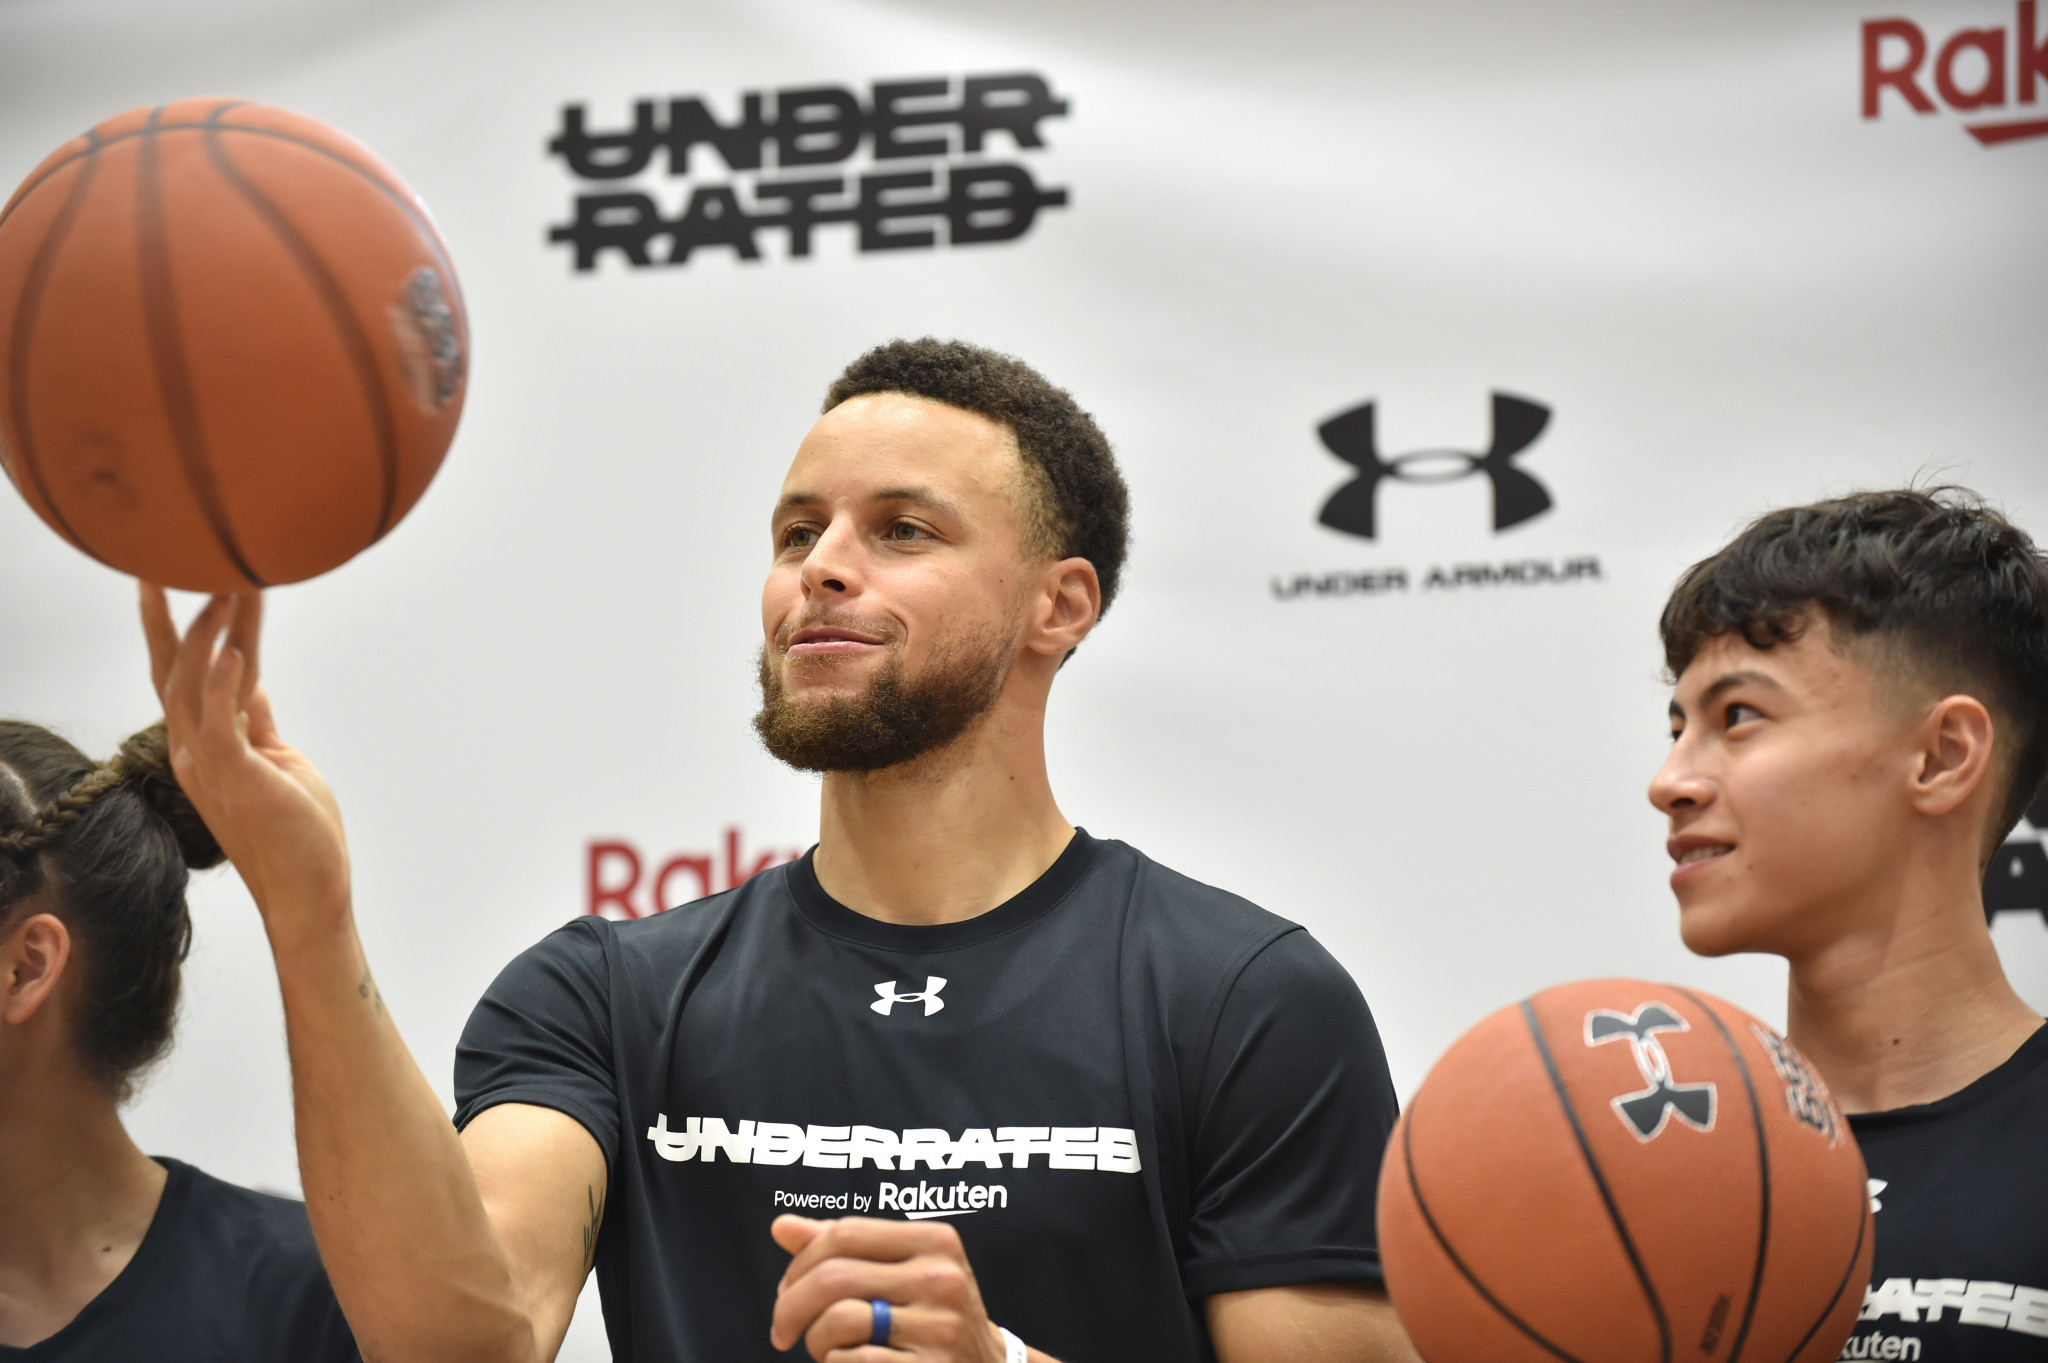 Basketball star Curry commits to the United States at Tokyo 2020